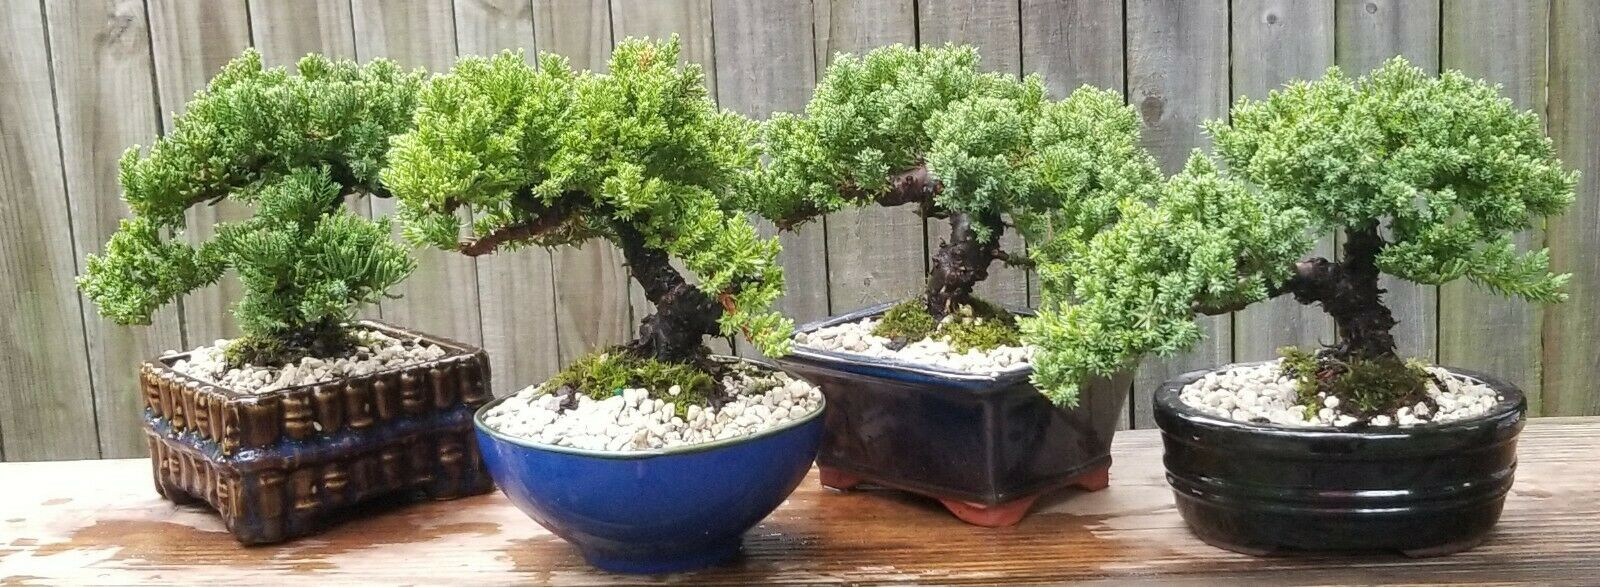 Juniper Bonsai Tree Black Pot With Accenting Rock Pebbles Indoor House Plant For Sale Online Ebay